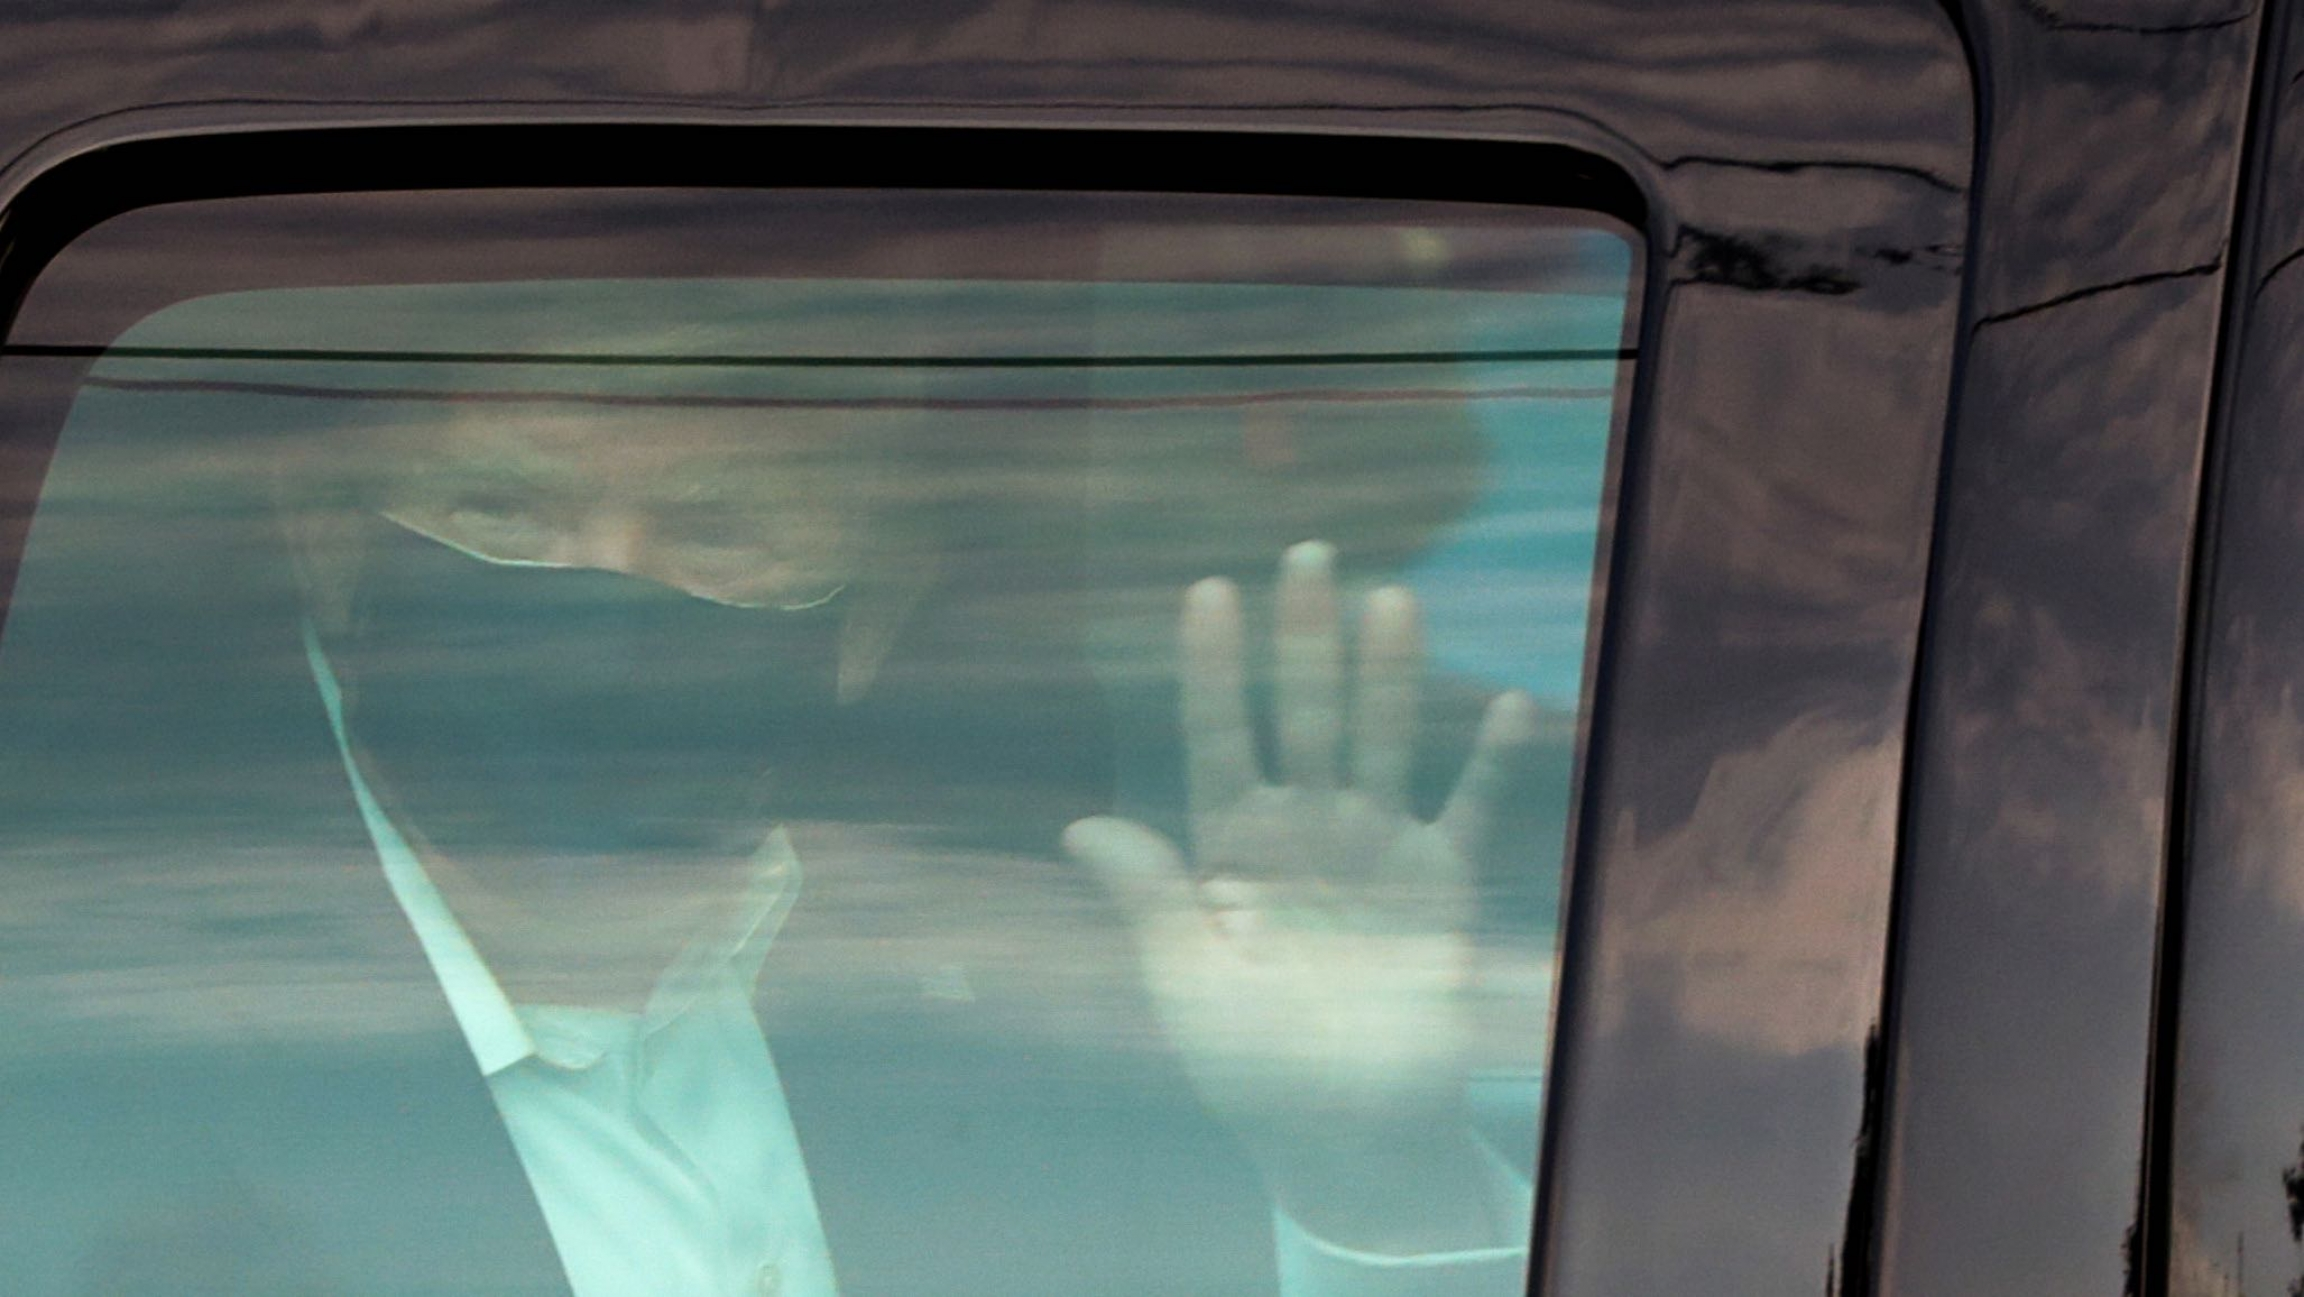 President Donald Trump waves to supporters as he briefly rides by in the presidential motorcade in front of Walter Reed National Military Medical Center, where he is being treated for the coronavirus in Bethesda, Maryland, Oct. 4, 2020.